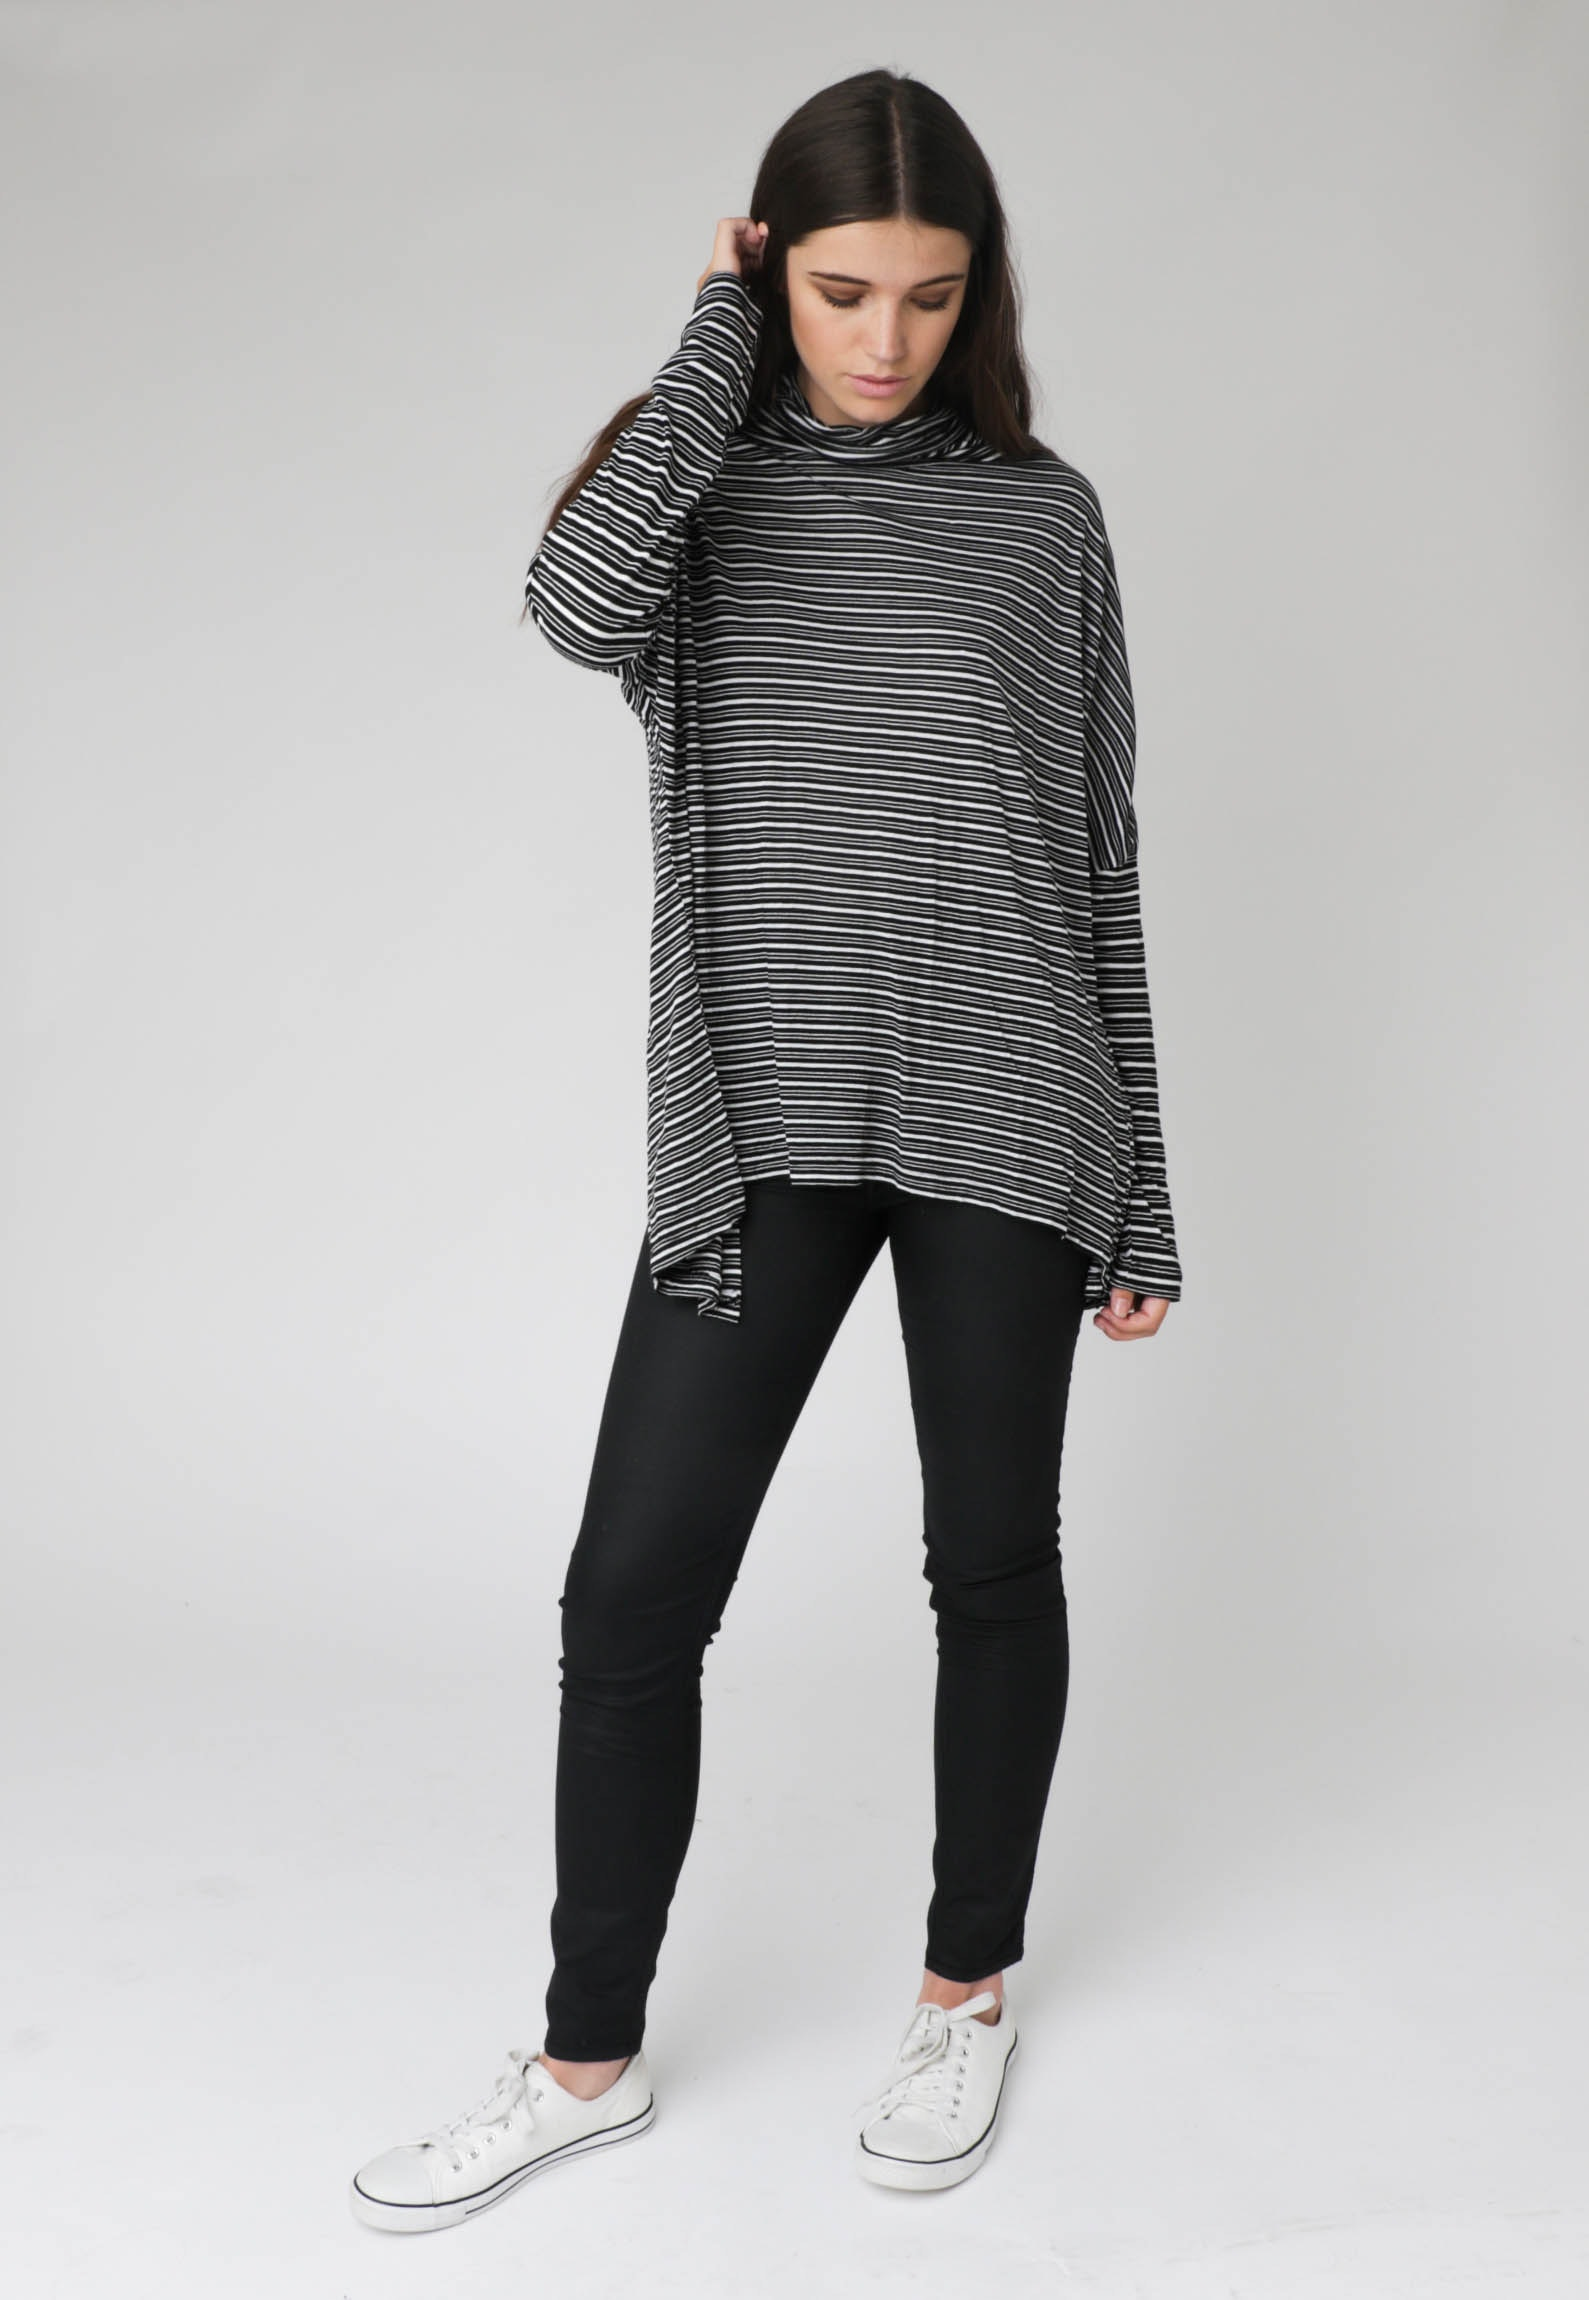 Silent Theory - Runway Ay L/S Top - Black & White Stripe